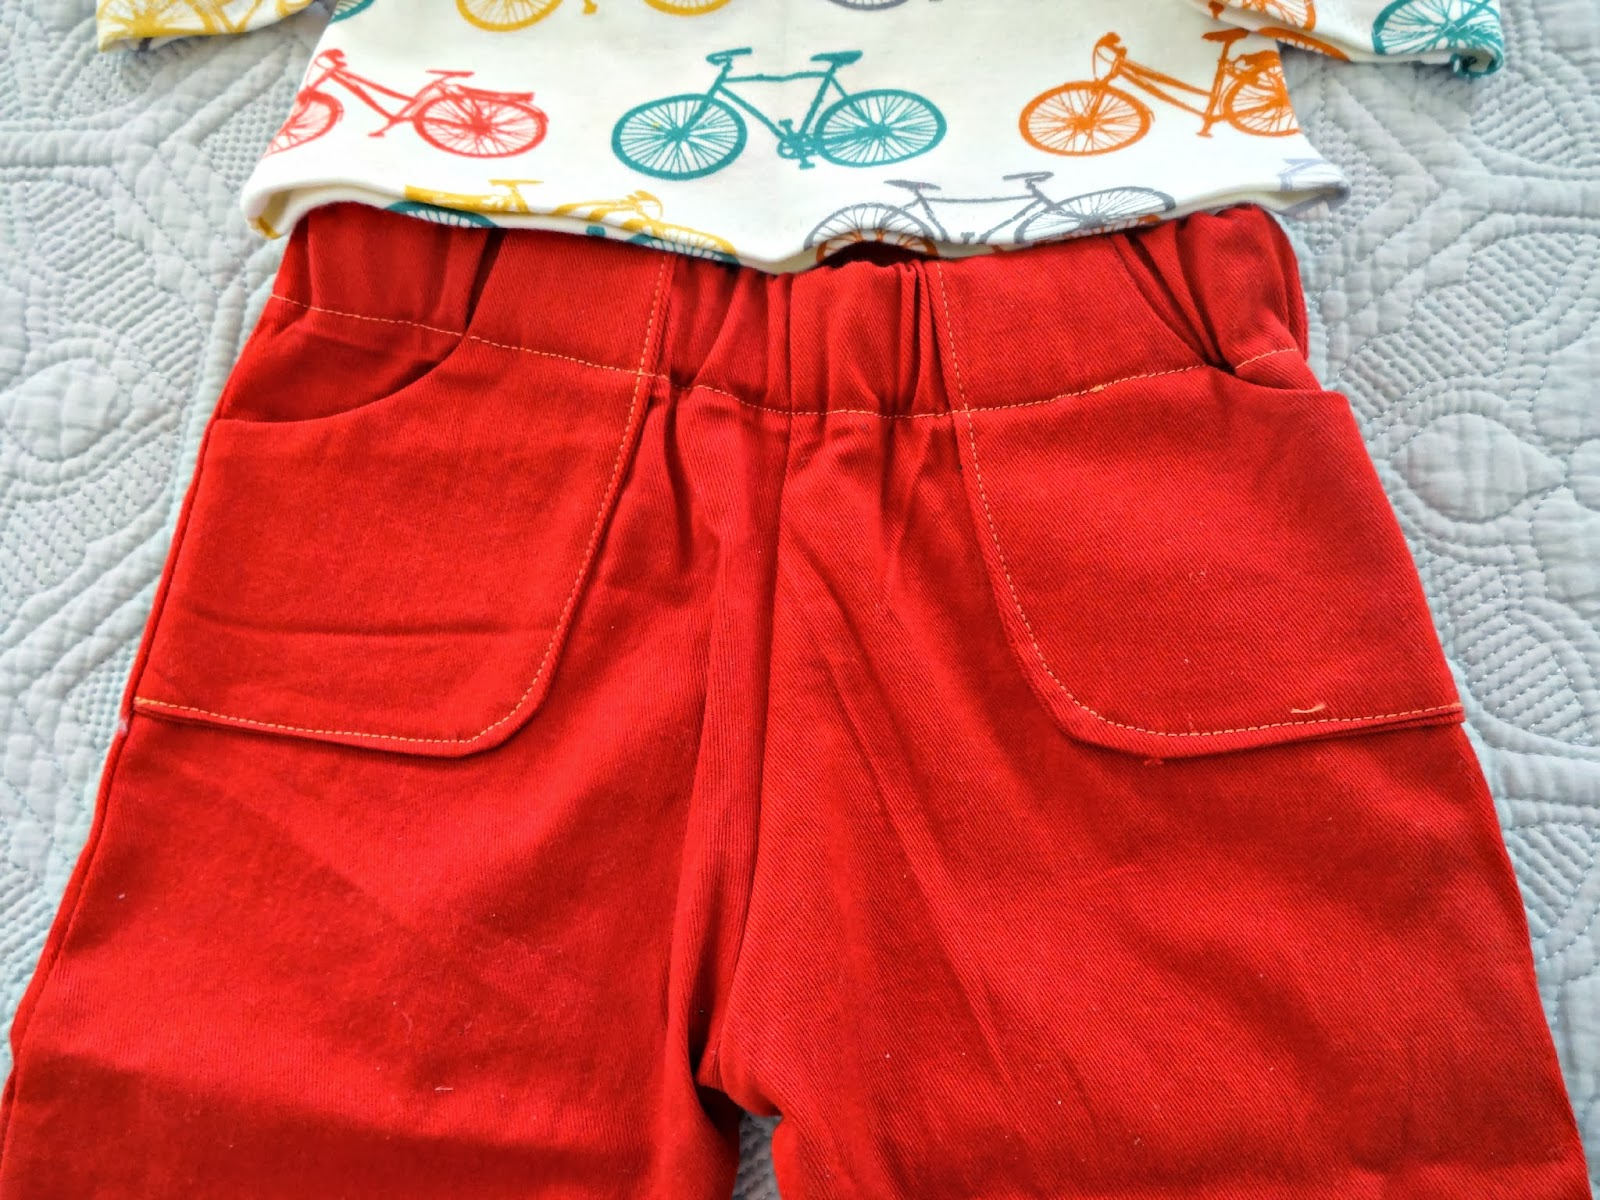 Seemesew Rust Colored Pants And Bikes